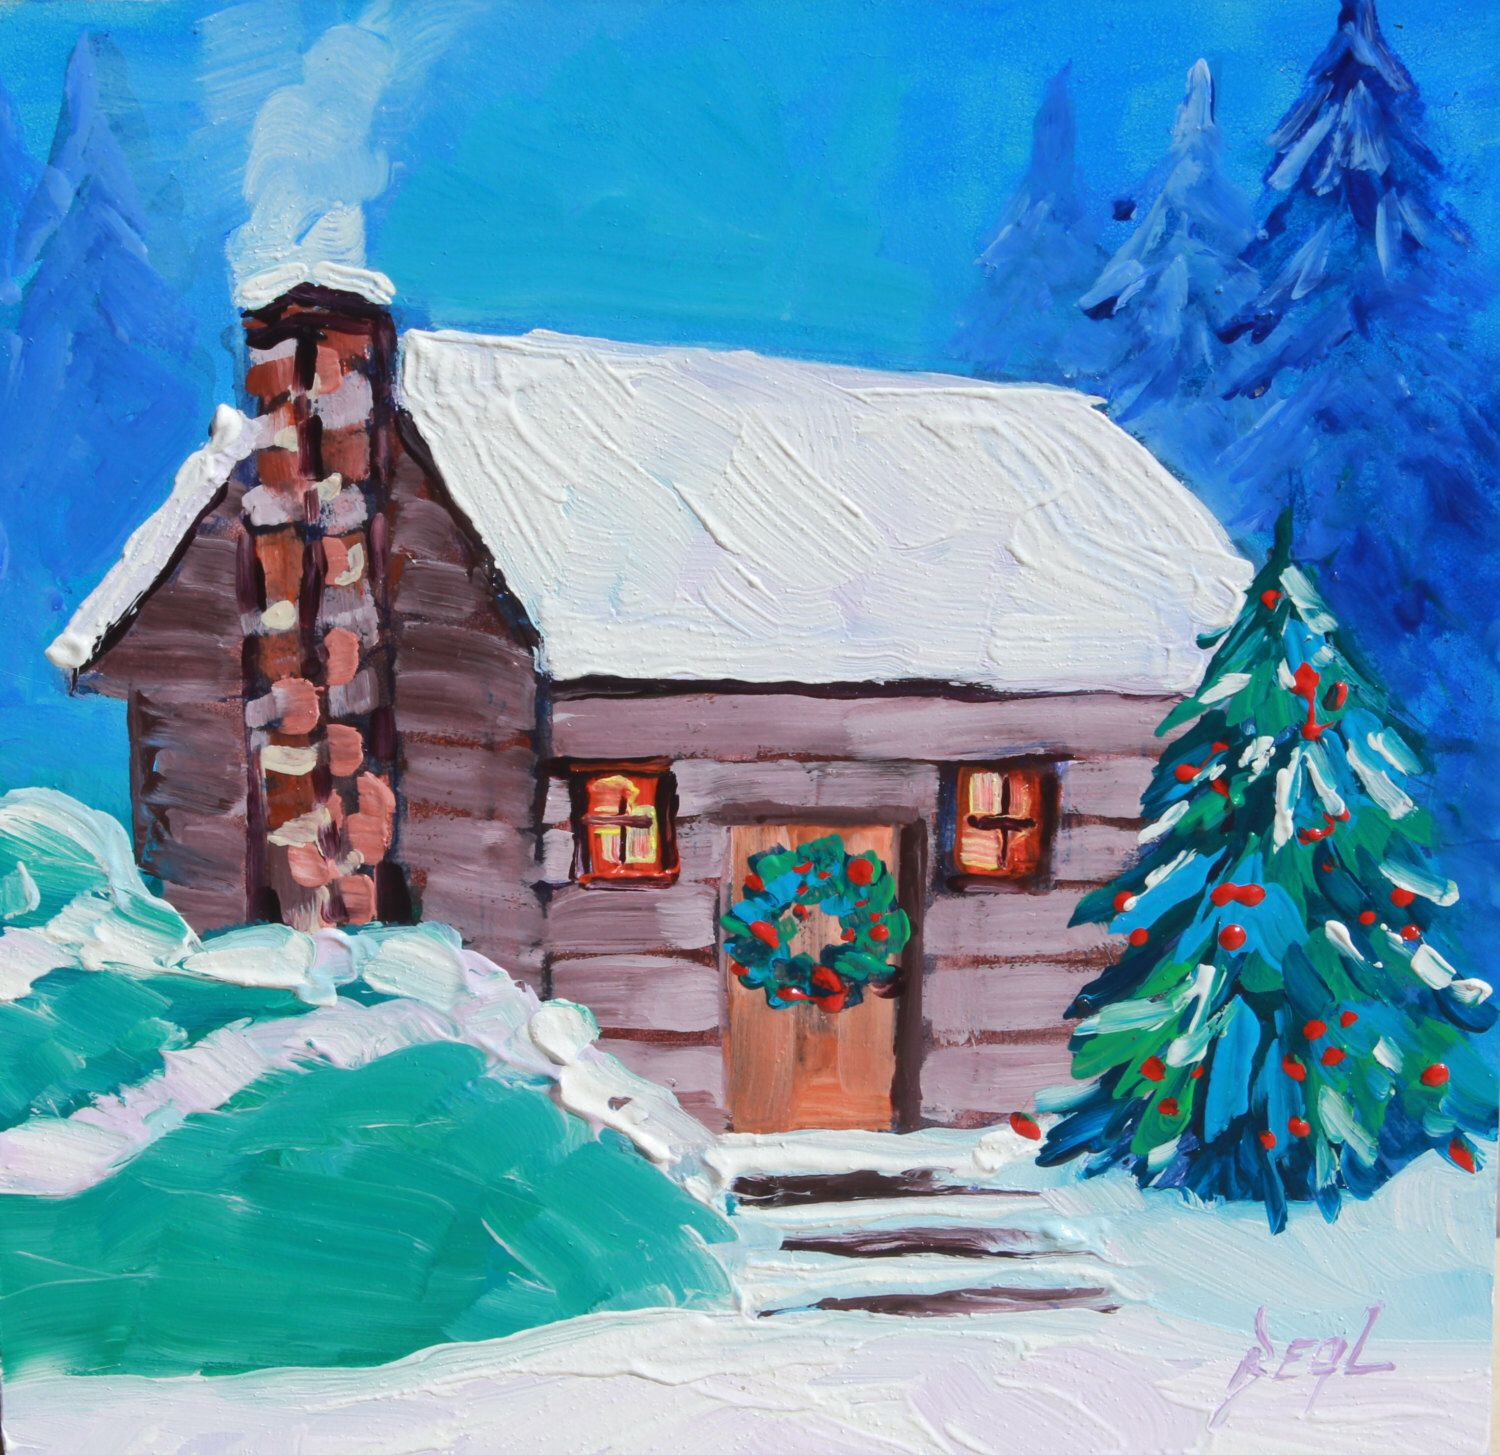 Original Art, Oil Painting, Winter painting, Christmas Art, Snowy cabin, Christmas gift, rbealart by rbealart on Etsy https://www.etsy.com/listing/249560340/original-art-oil-painting-winter